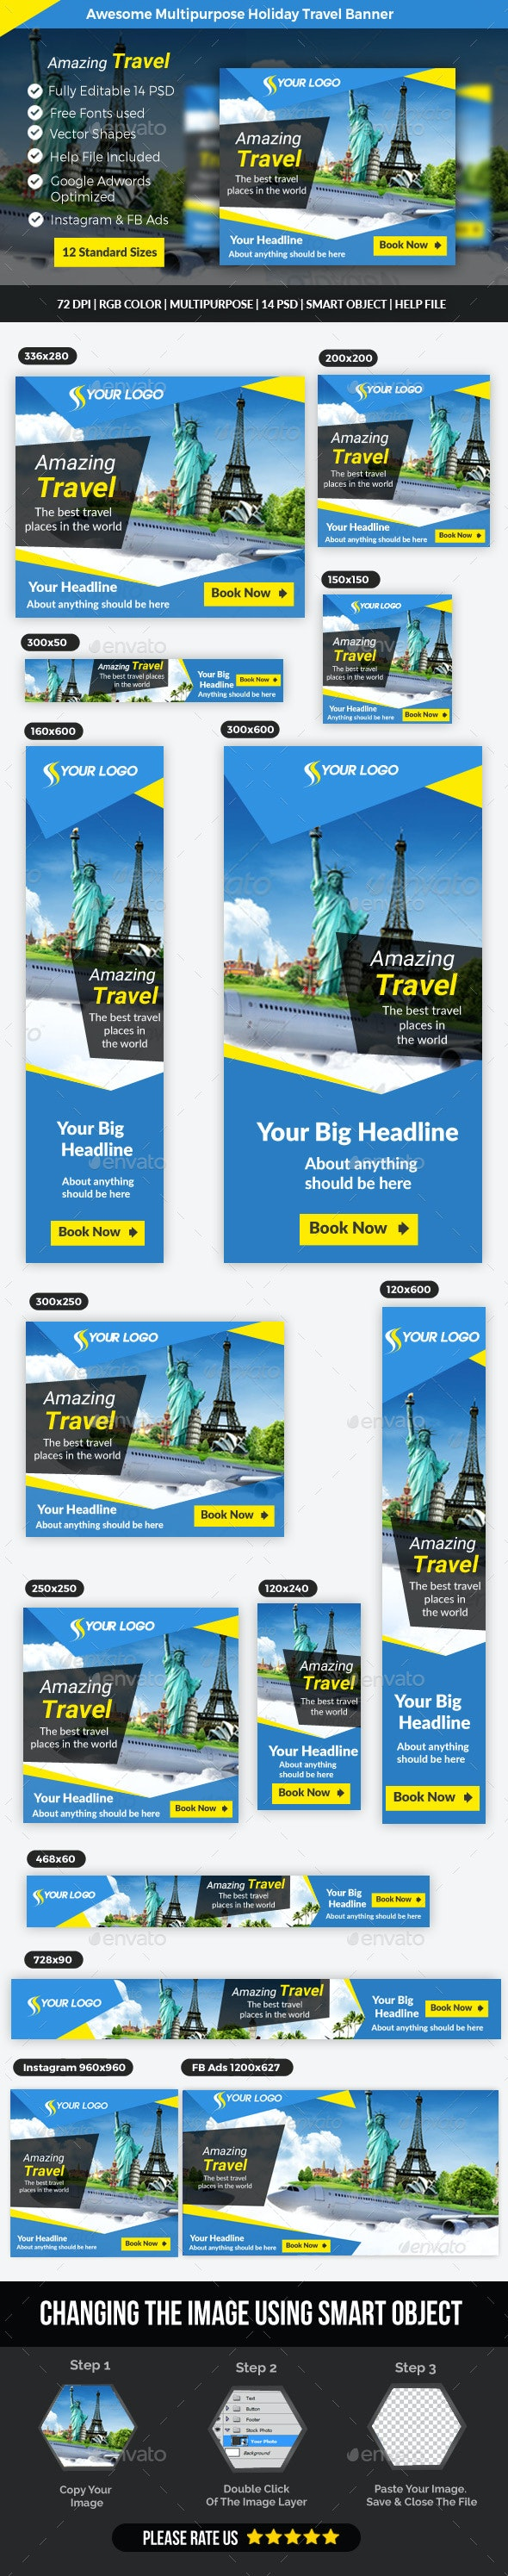 Business Holiday Travel Banner - Banners & Ads Web Elements